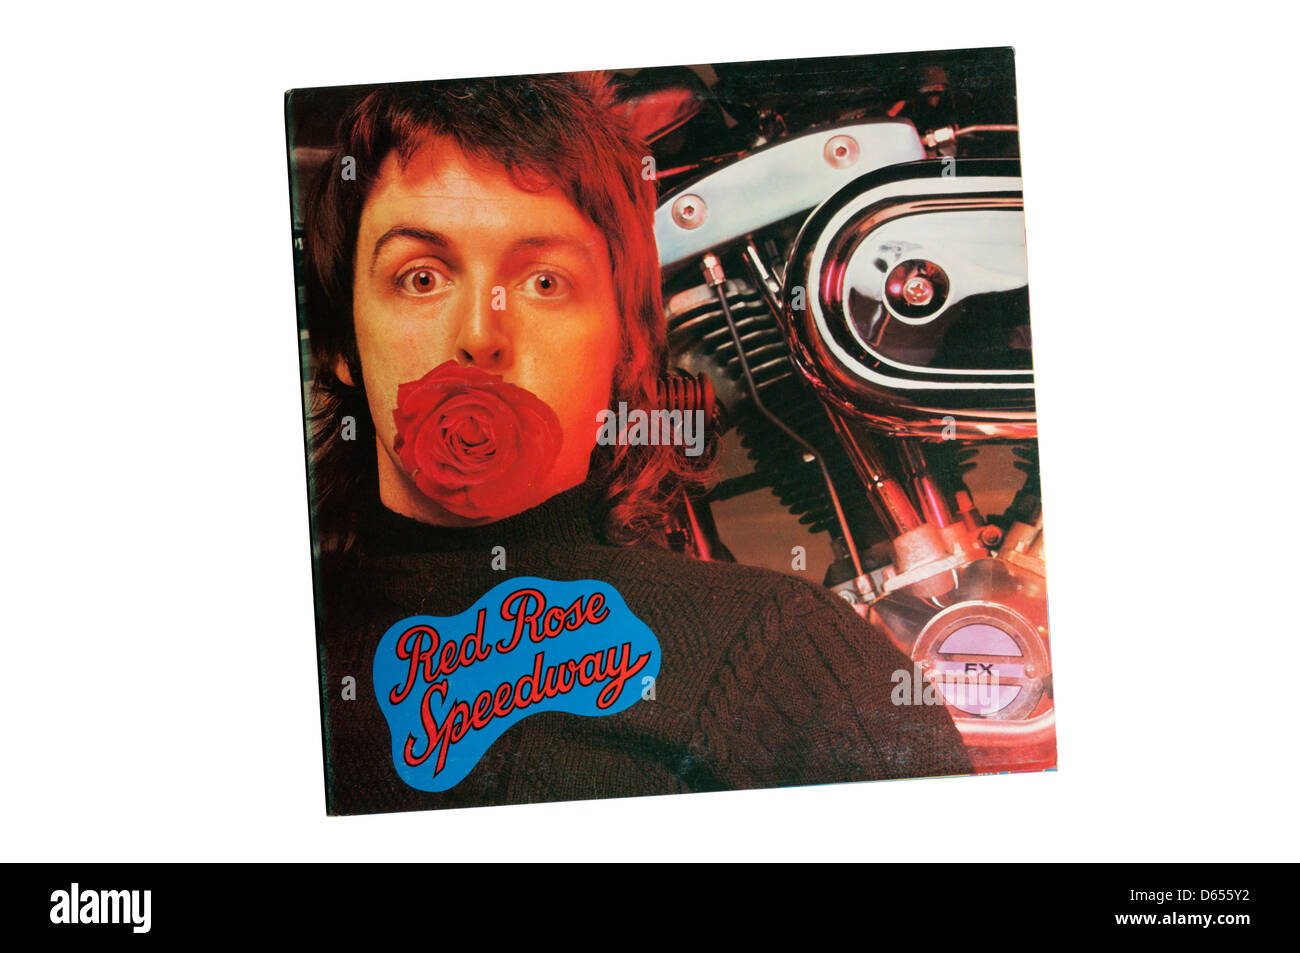 Red Rose Speedway Released In 1973 Was The Second Album By Paul McCartney And